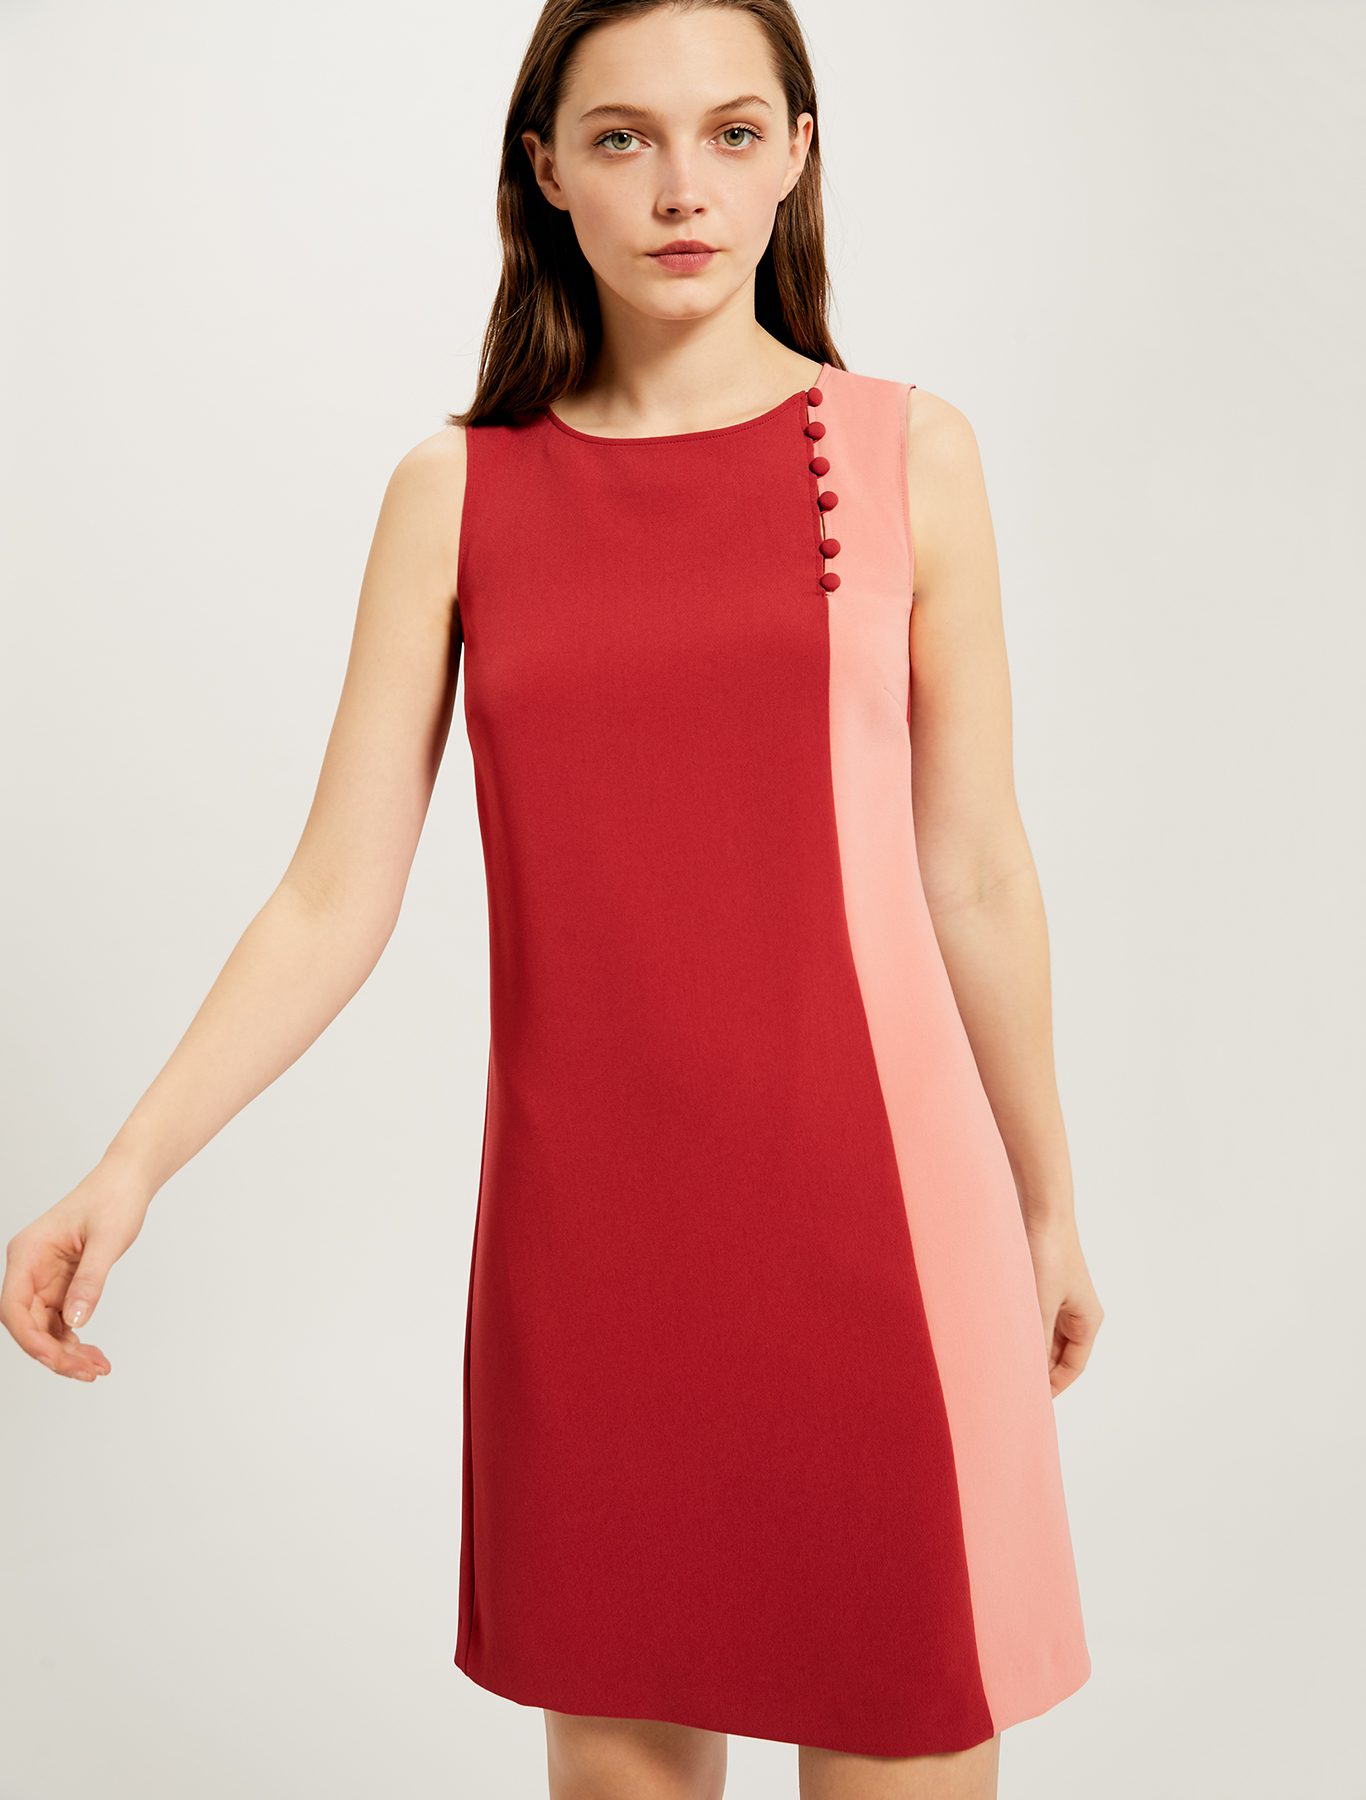 Colour-block dress with boule buttons - red - pennyblack